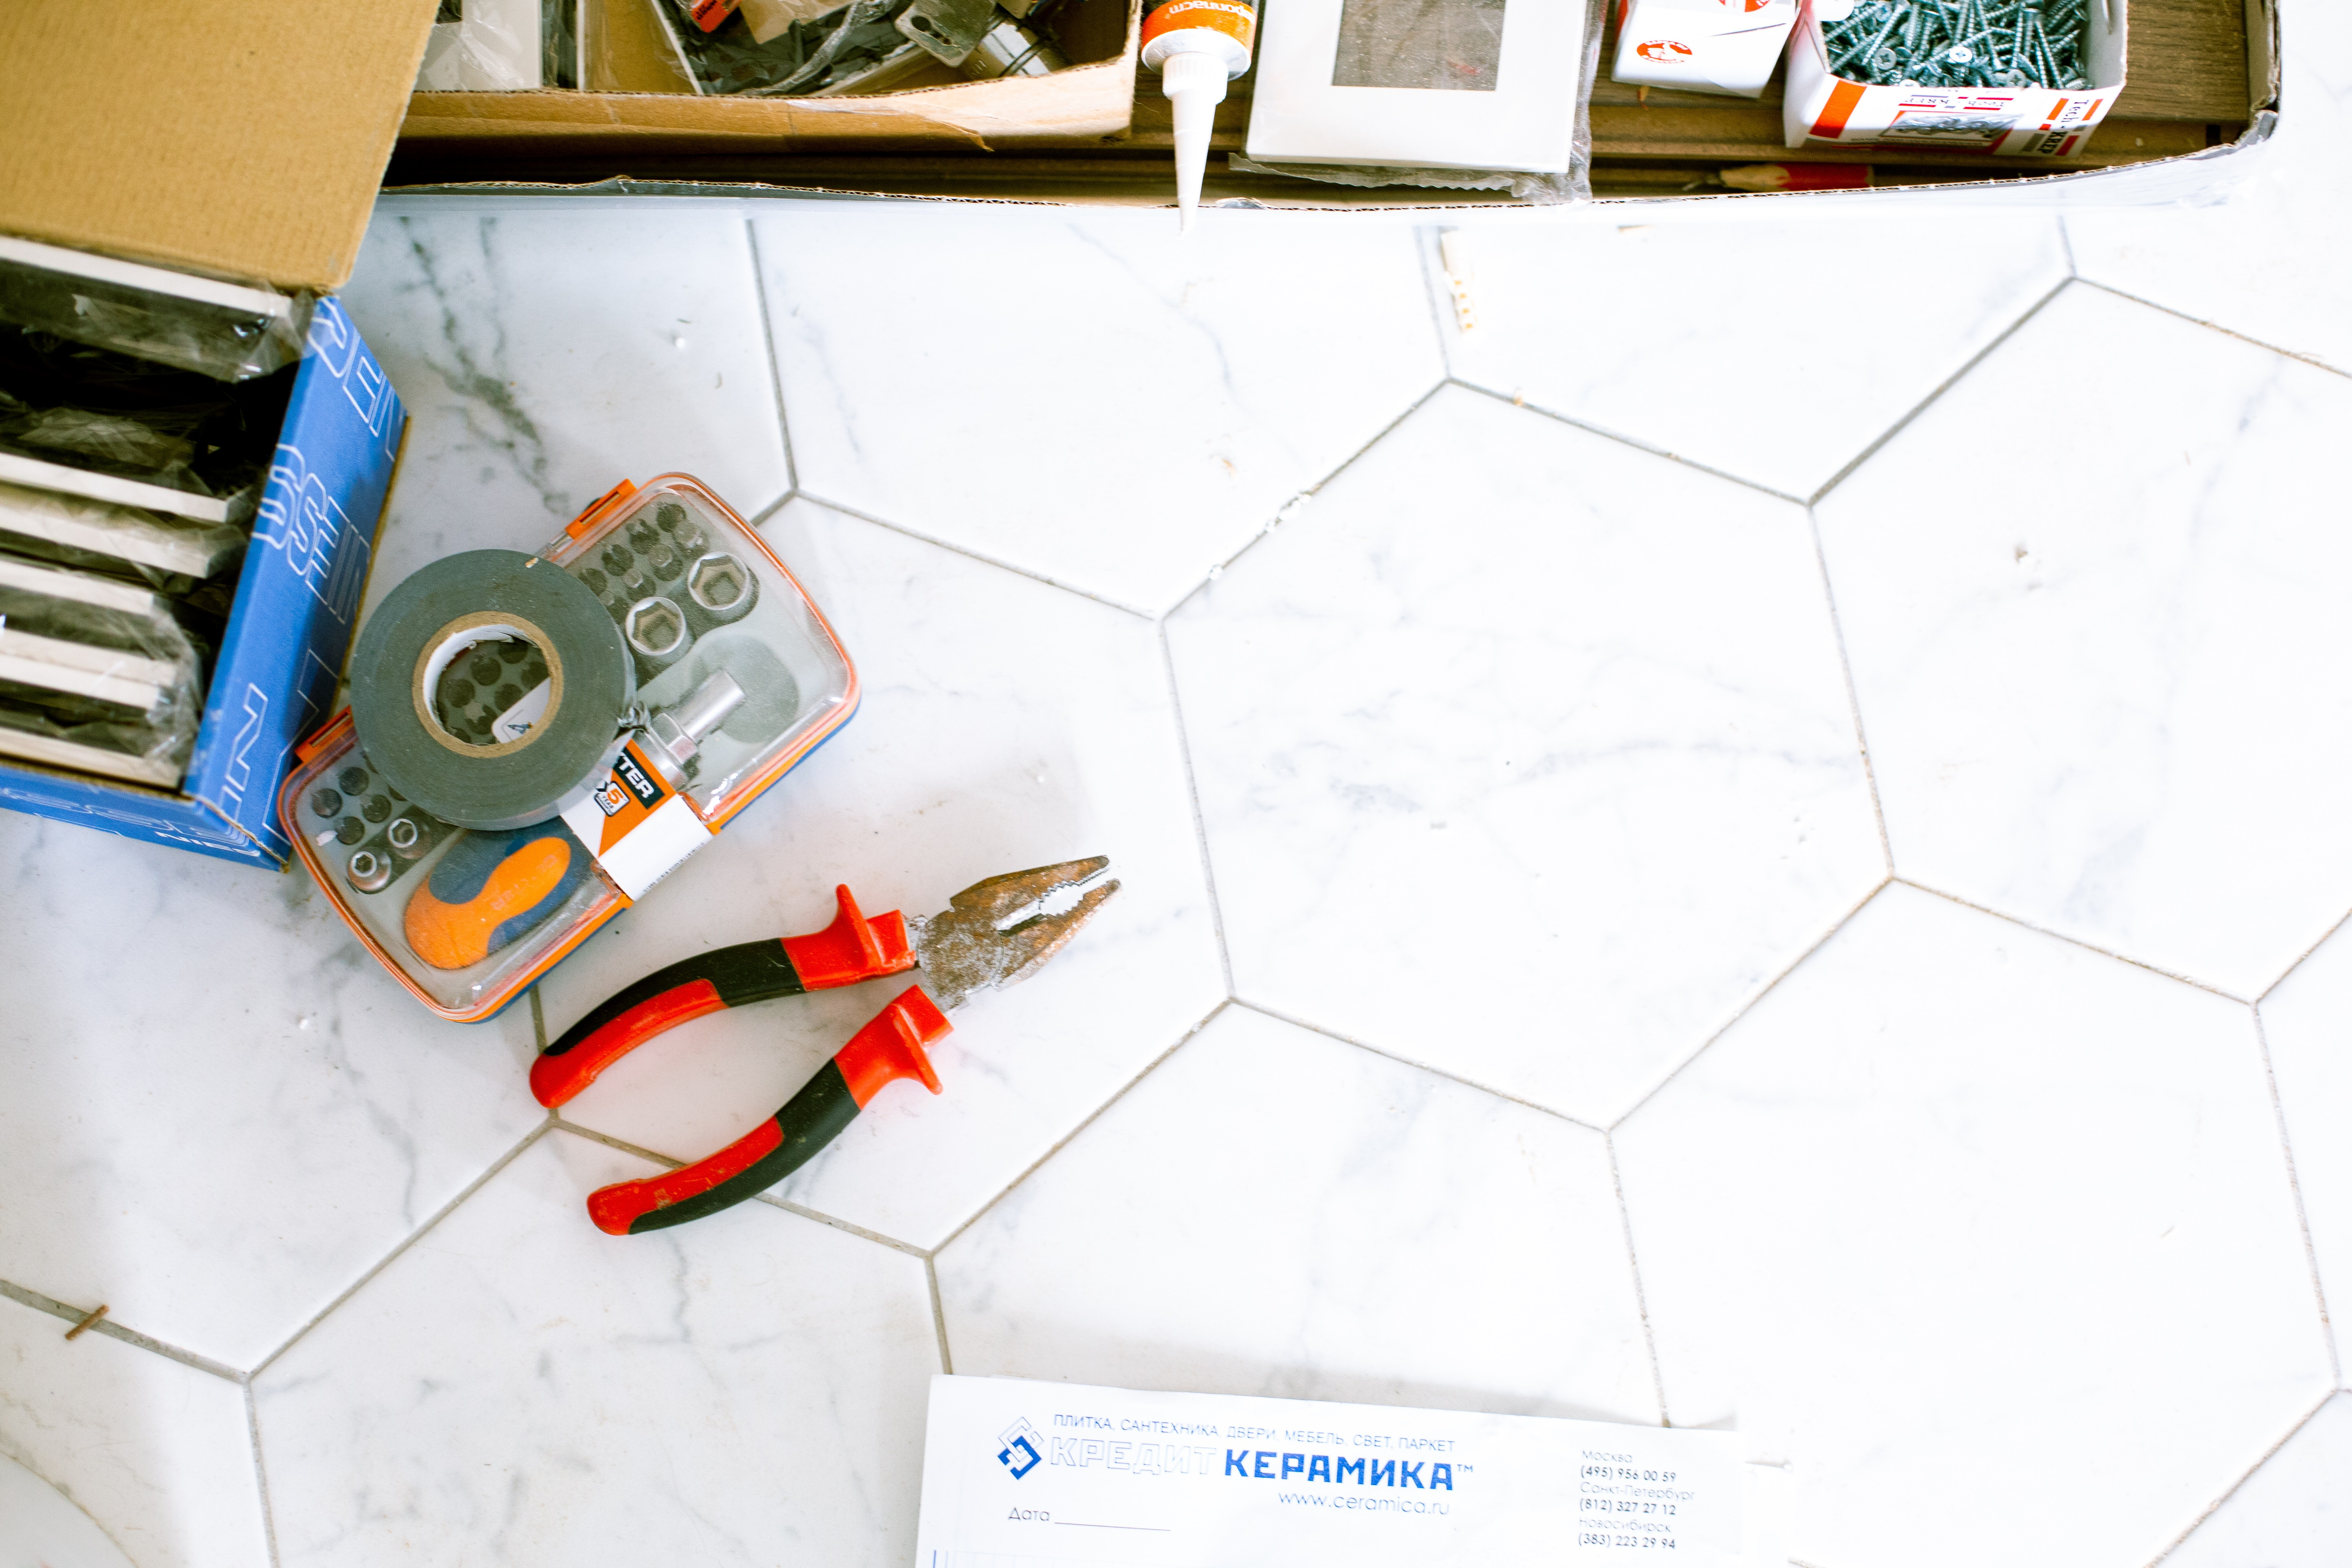 Tools laying on tile for home care and repair